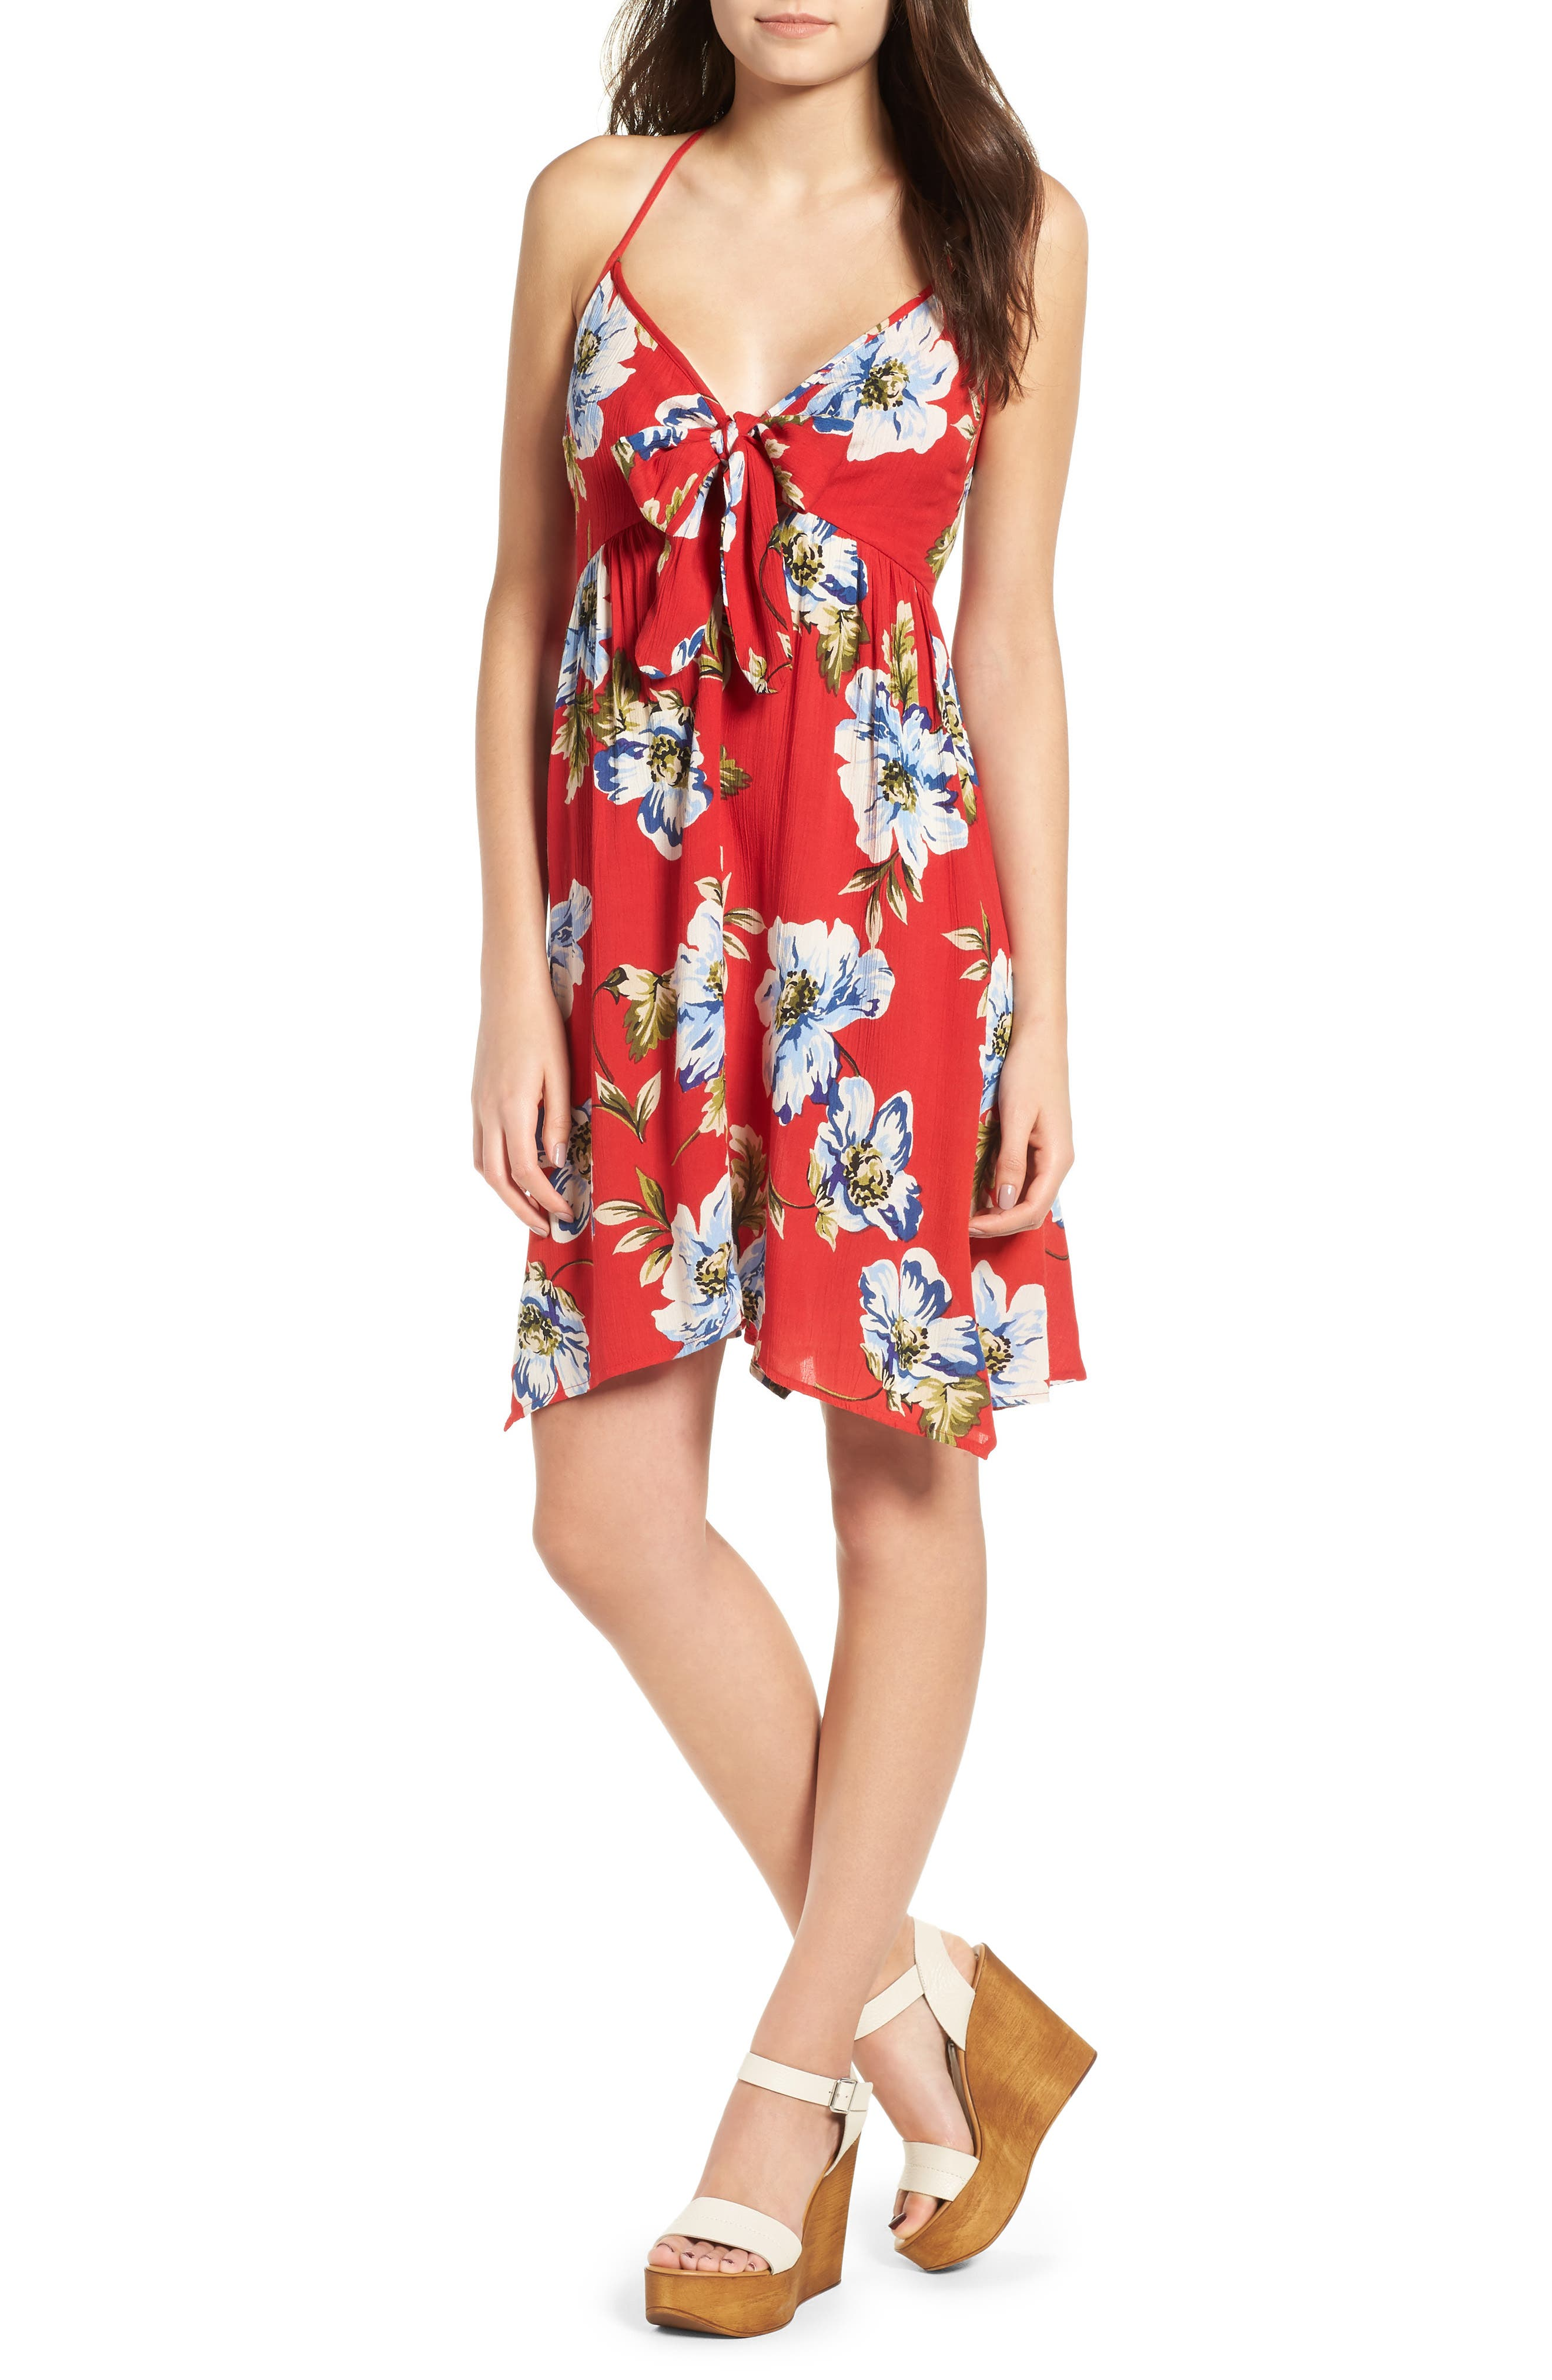 Band of Gypsies Blue Moon Floral Print Dress